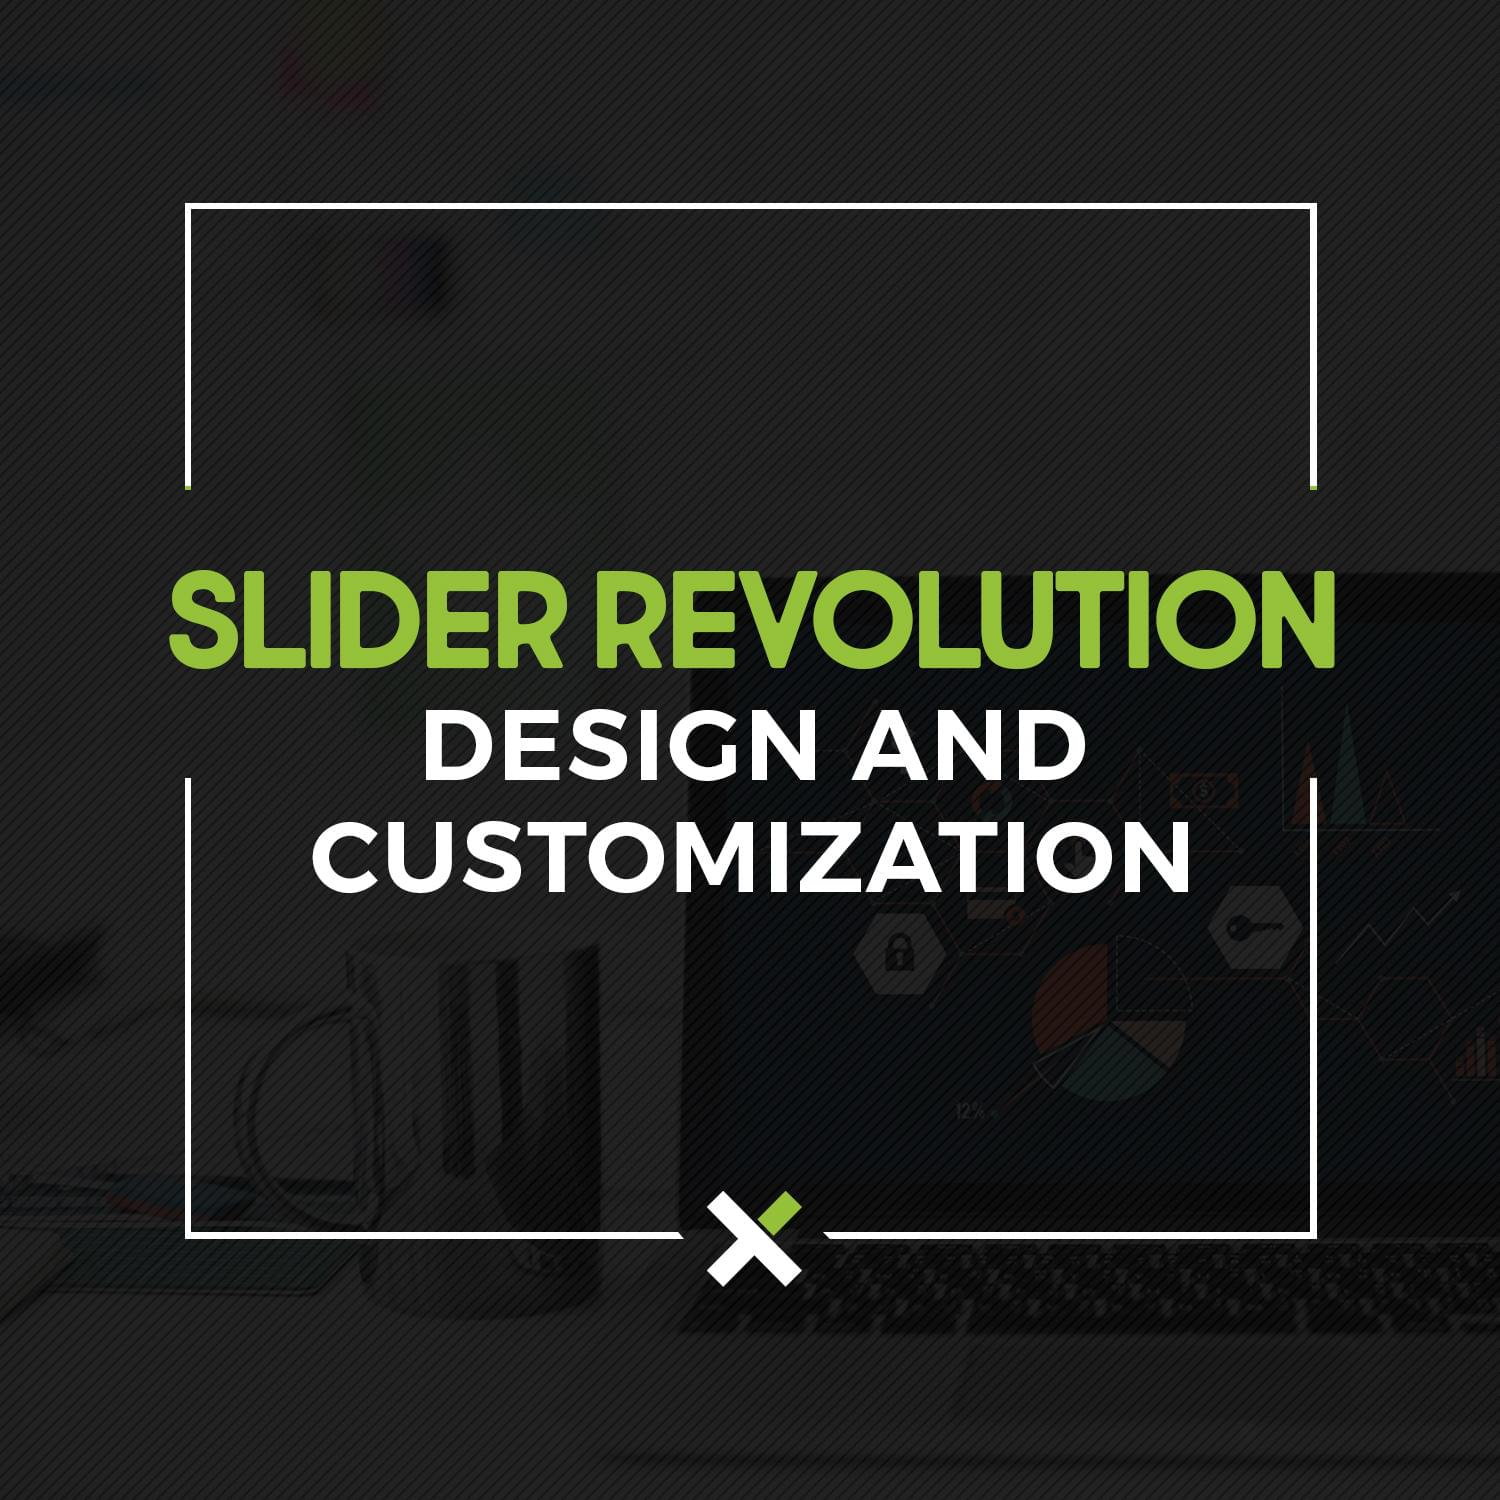 Slider Revolution Design And Customization by touringxx - 114844